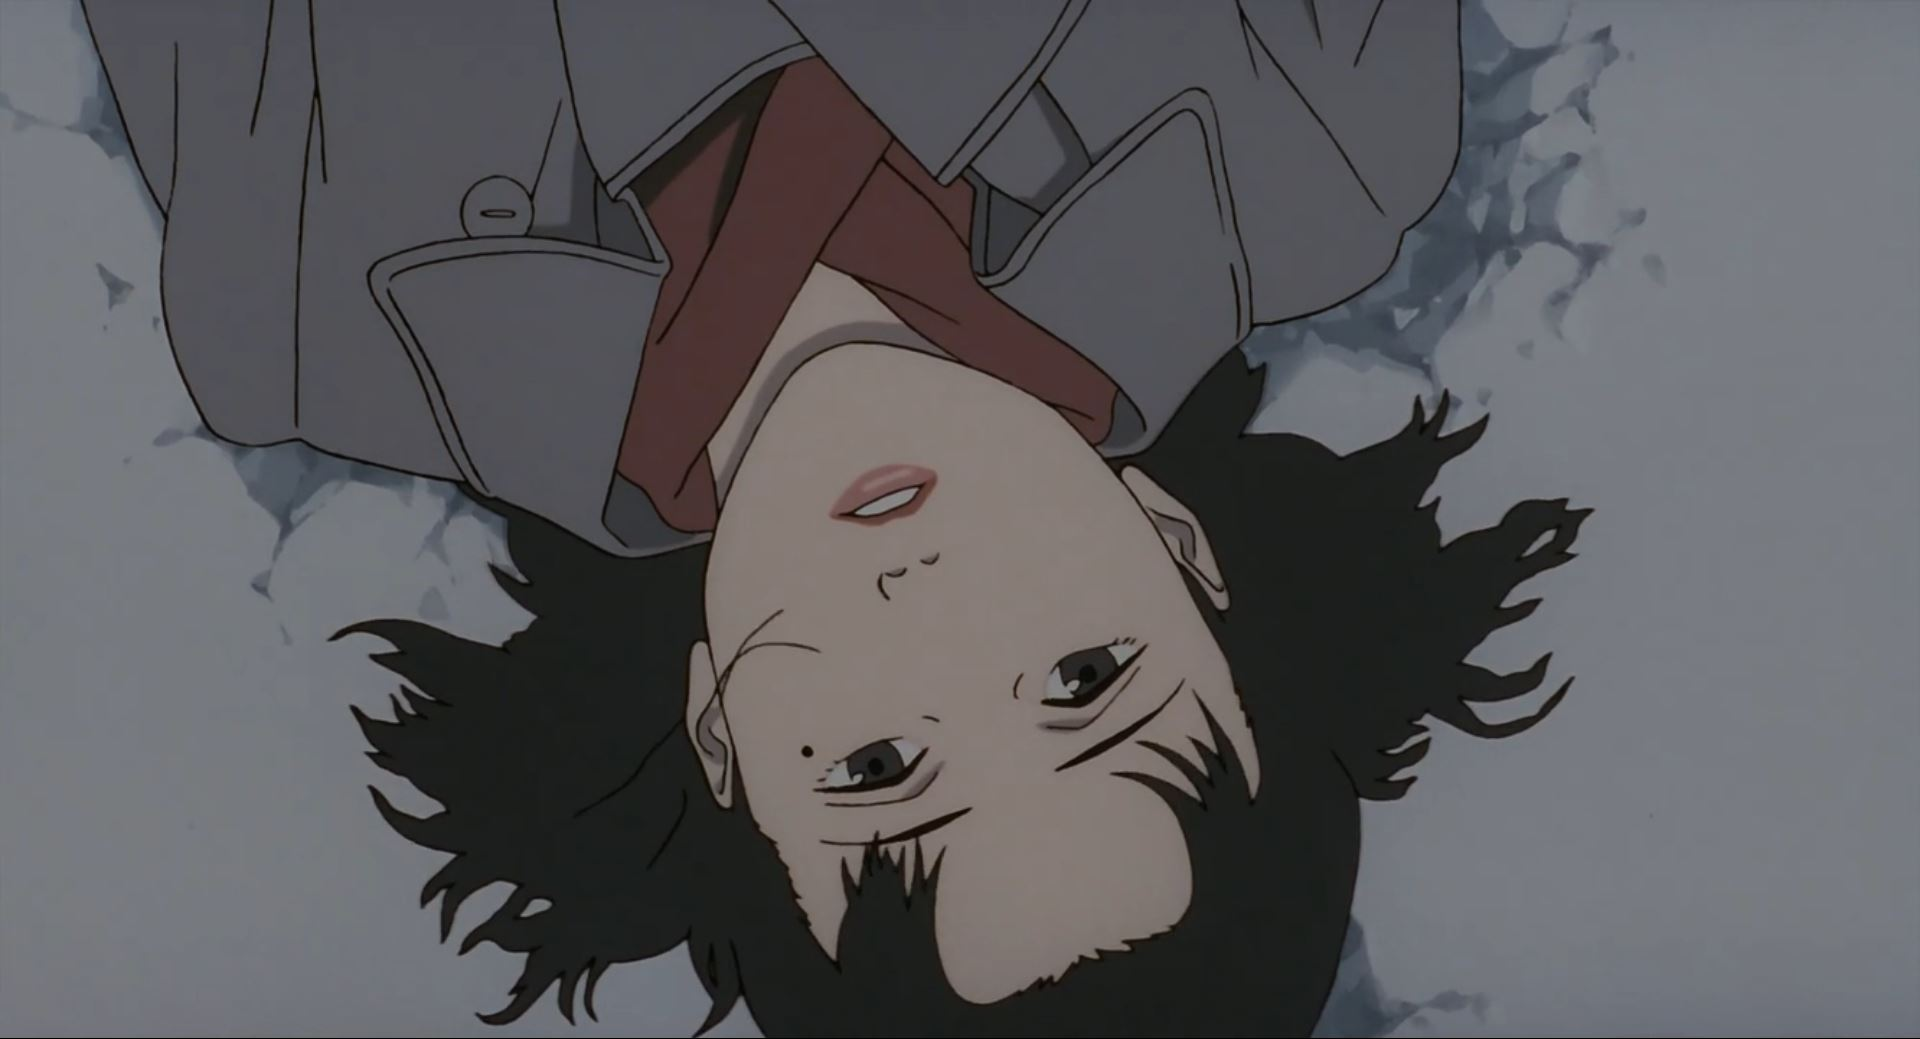 A middle-aged Chiyoko lying down face-up in the snow.